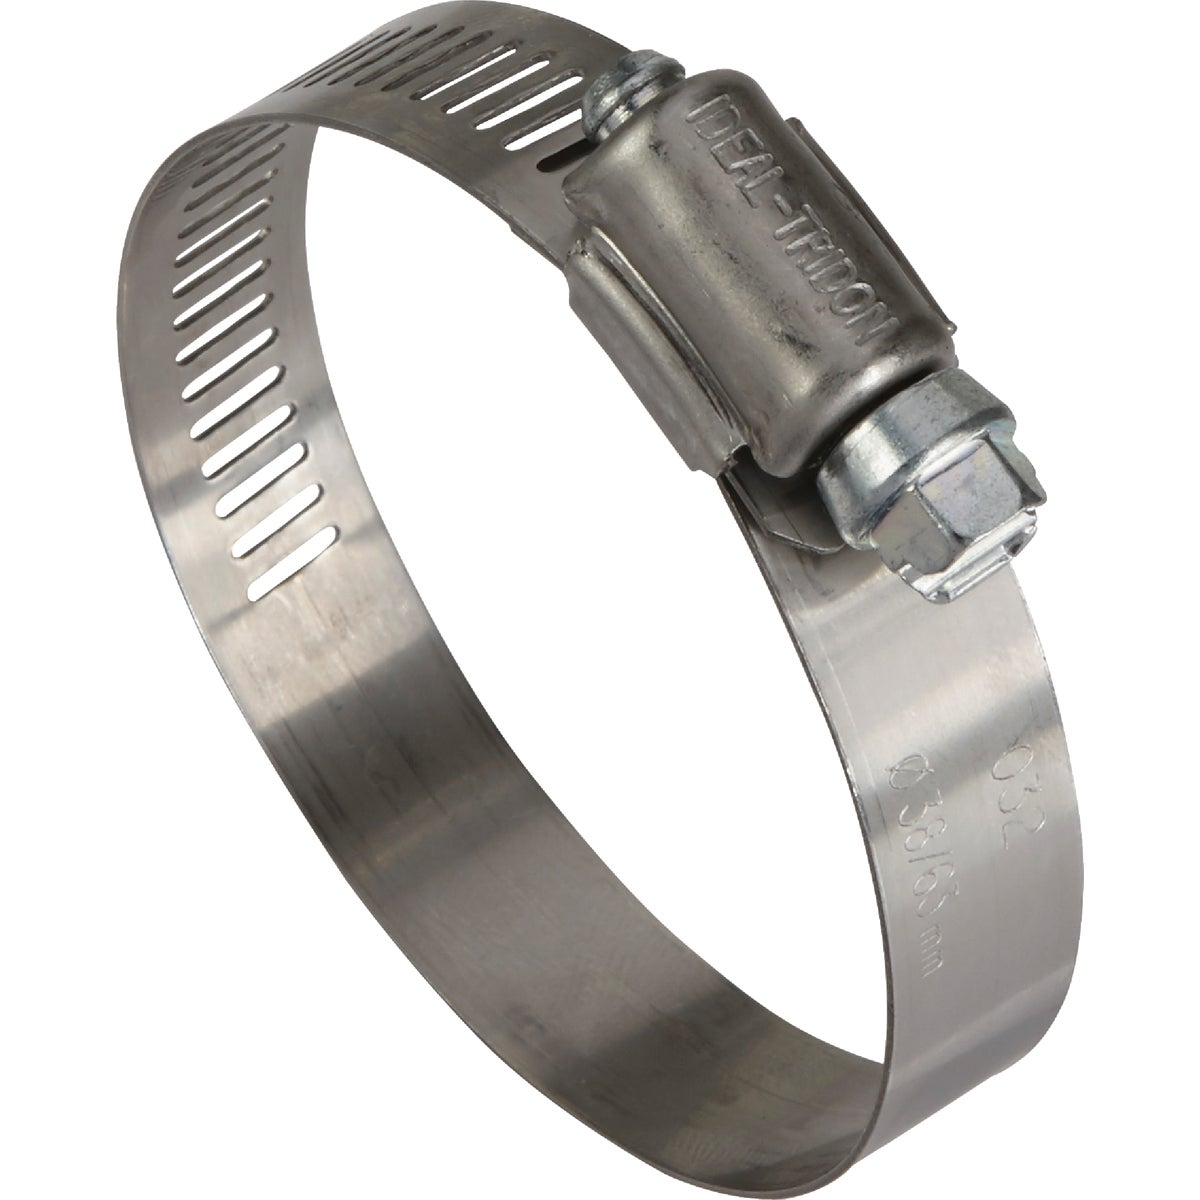 """1-1/2"""" - 2-1/2"""" CLAMP - 5732053 by Ideal Corp"""